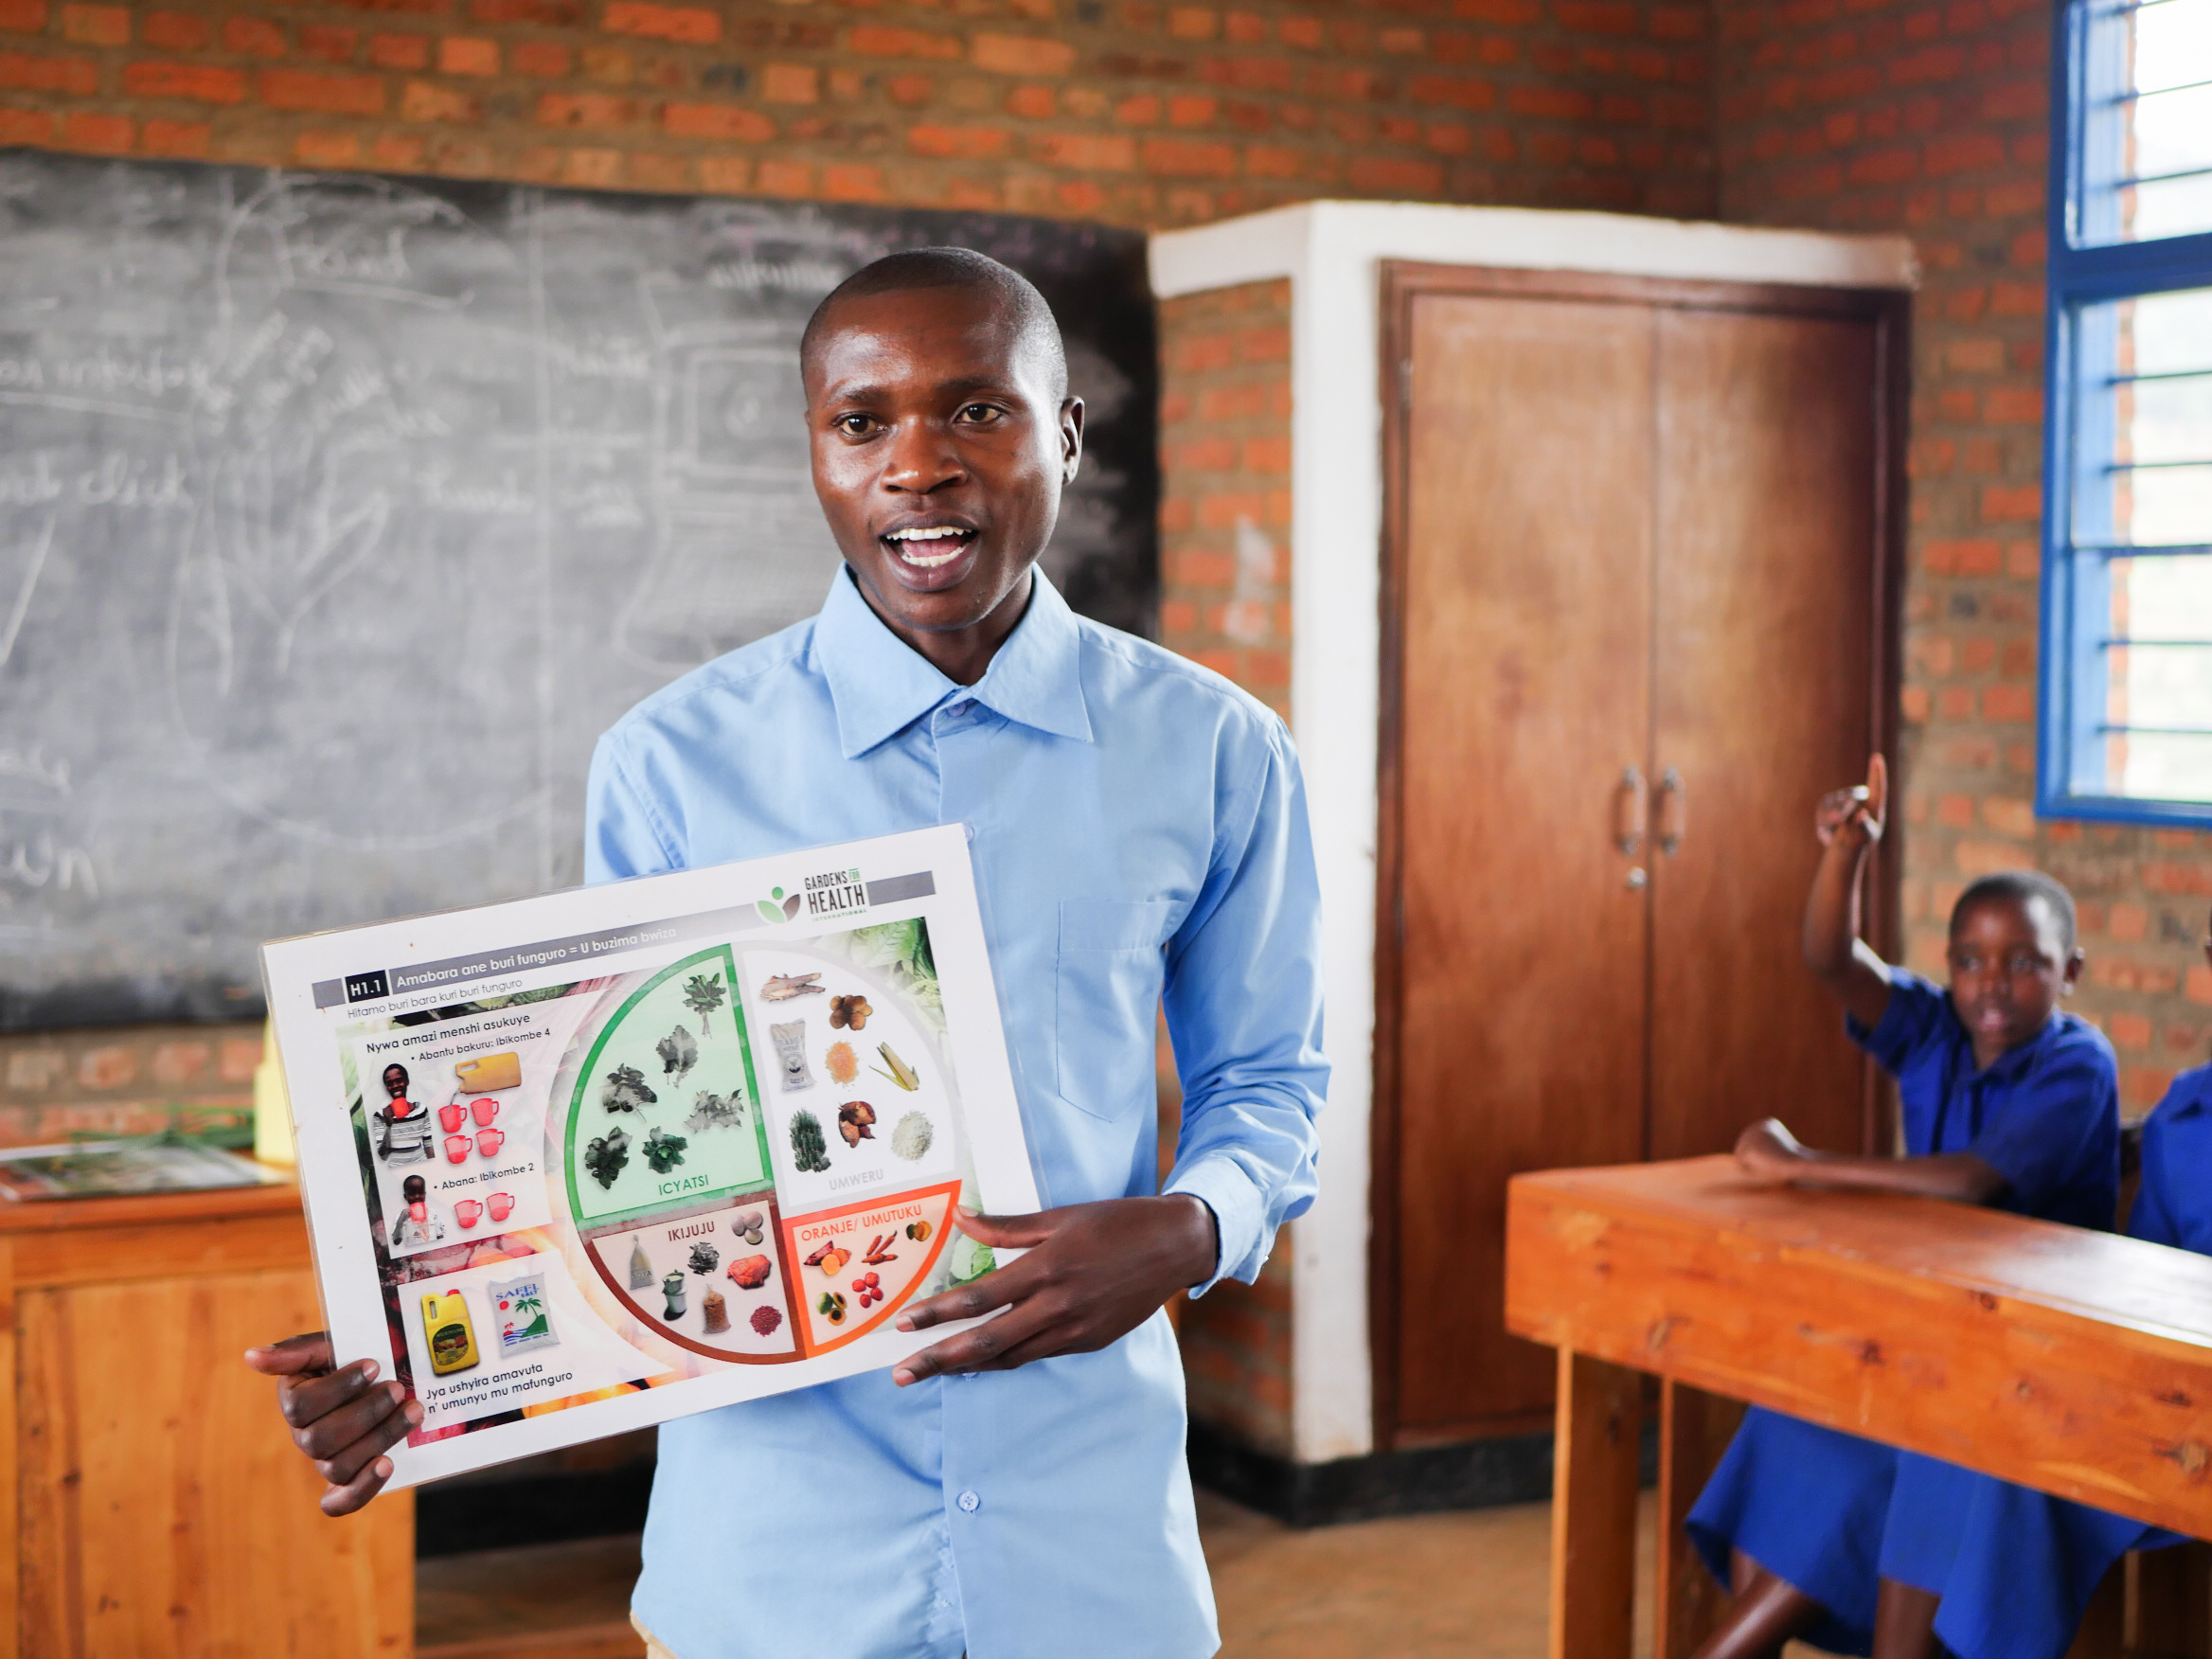 Placide, a teacher at Kabilizi Primary School, gives a lesson on the food groups that make up a balanced diet.